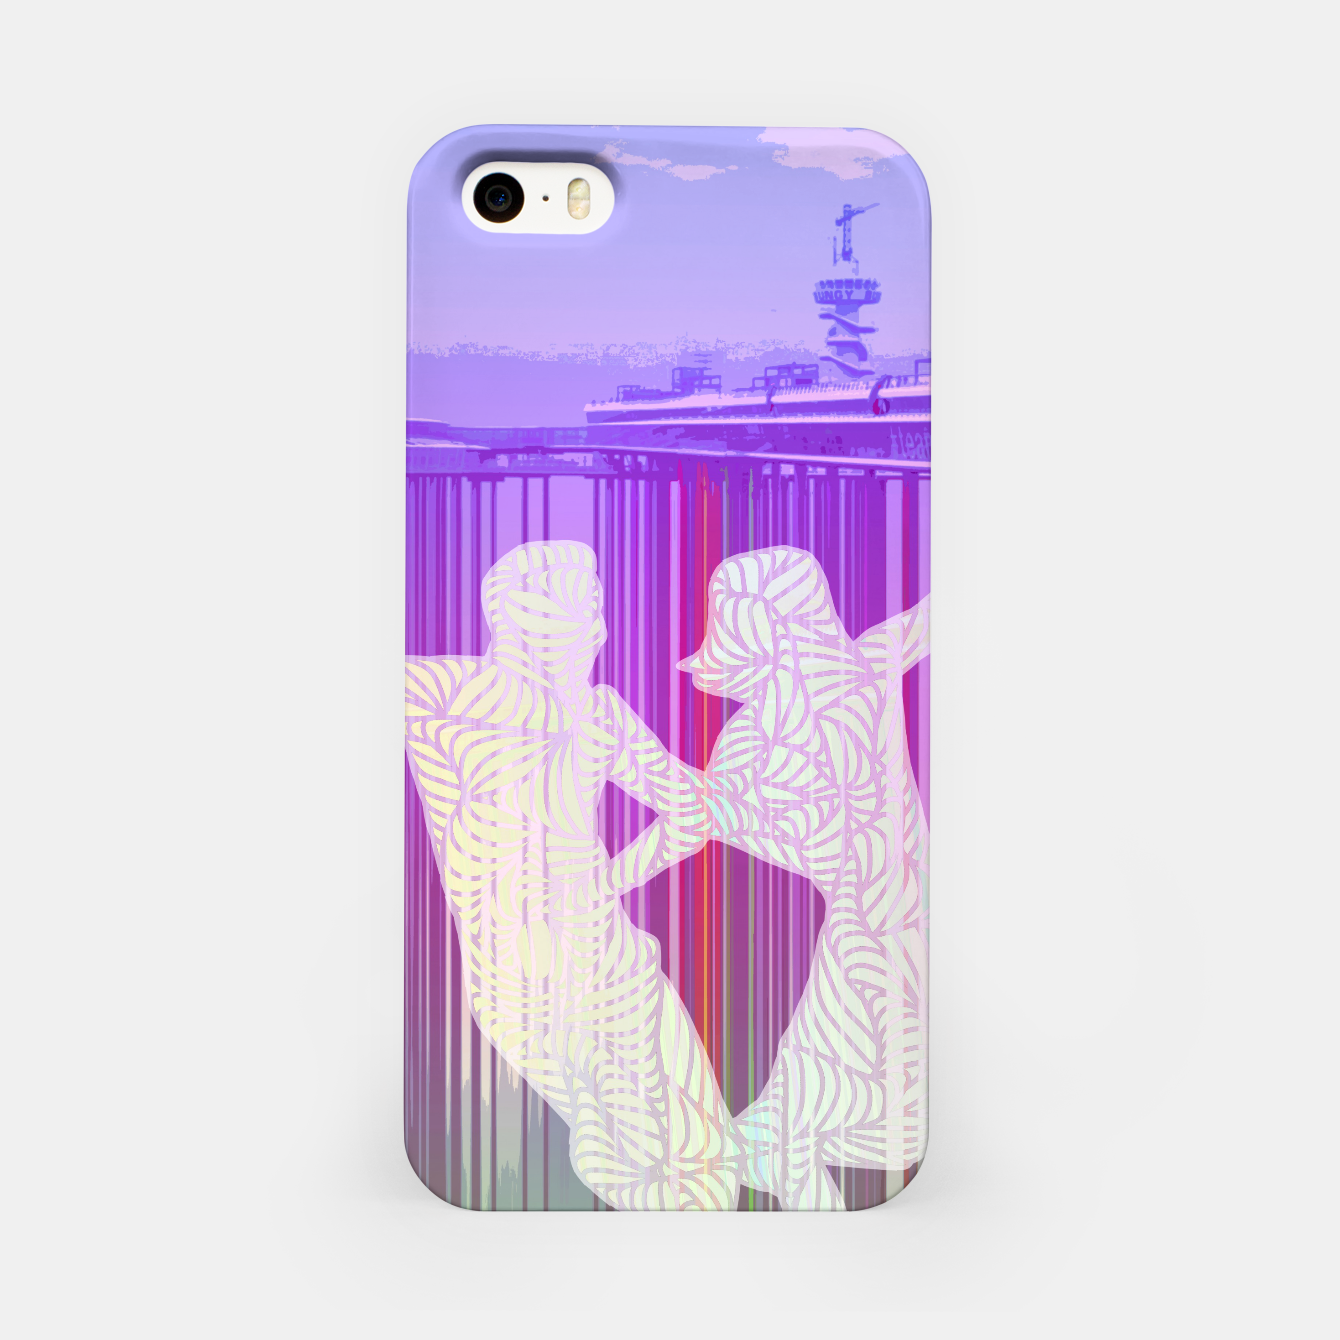 Image of ll iPhone Case - Live Heroes